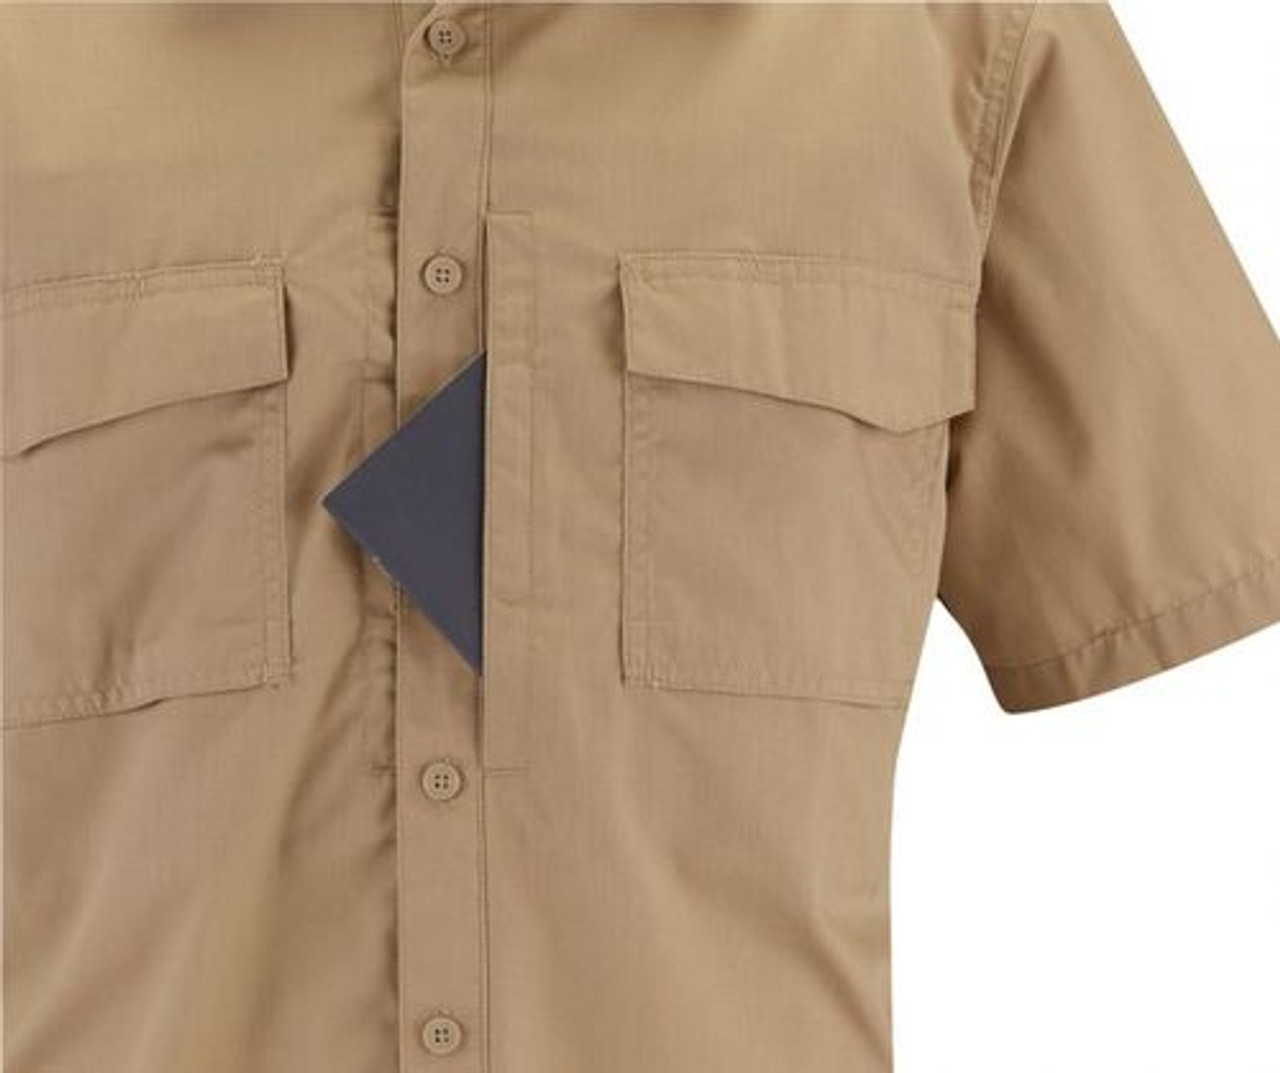 Propper® F5303 Men's Rev-Tac Tactical Casual Button-Down Shirt, Short Sleeve, 65% polyester/cotton 35% ripstop with 2 Chest Pockets, Mic Loop, Badge Tab, available in black, khaki, olive and LAPD Navy